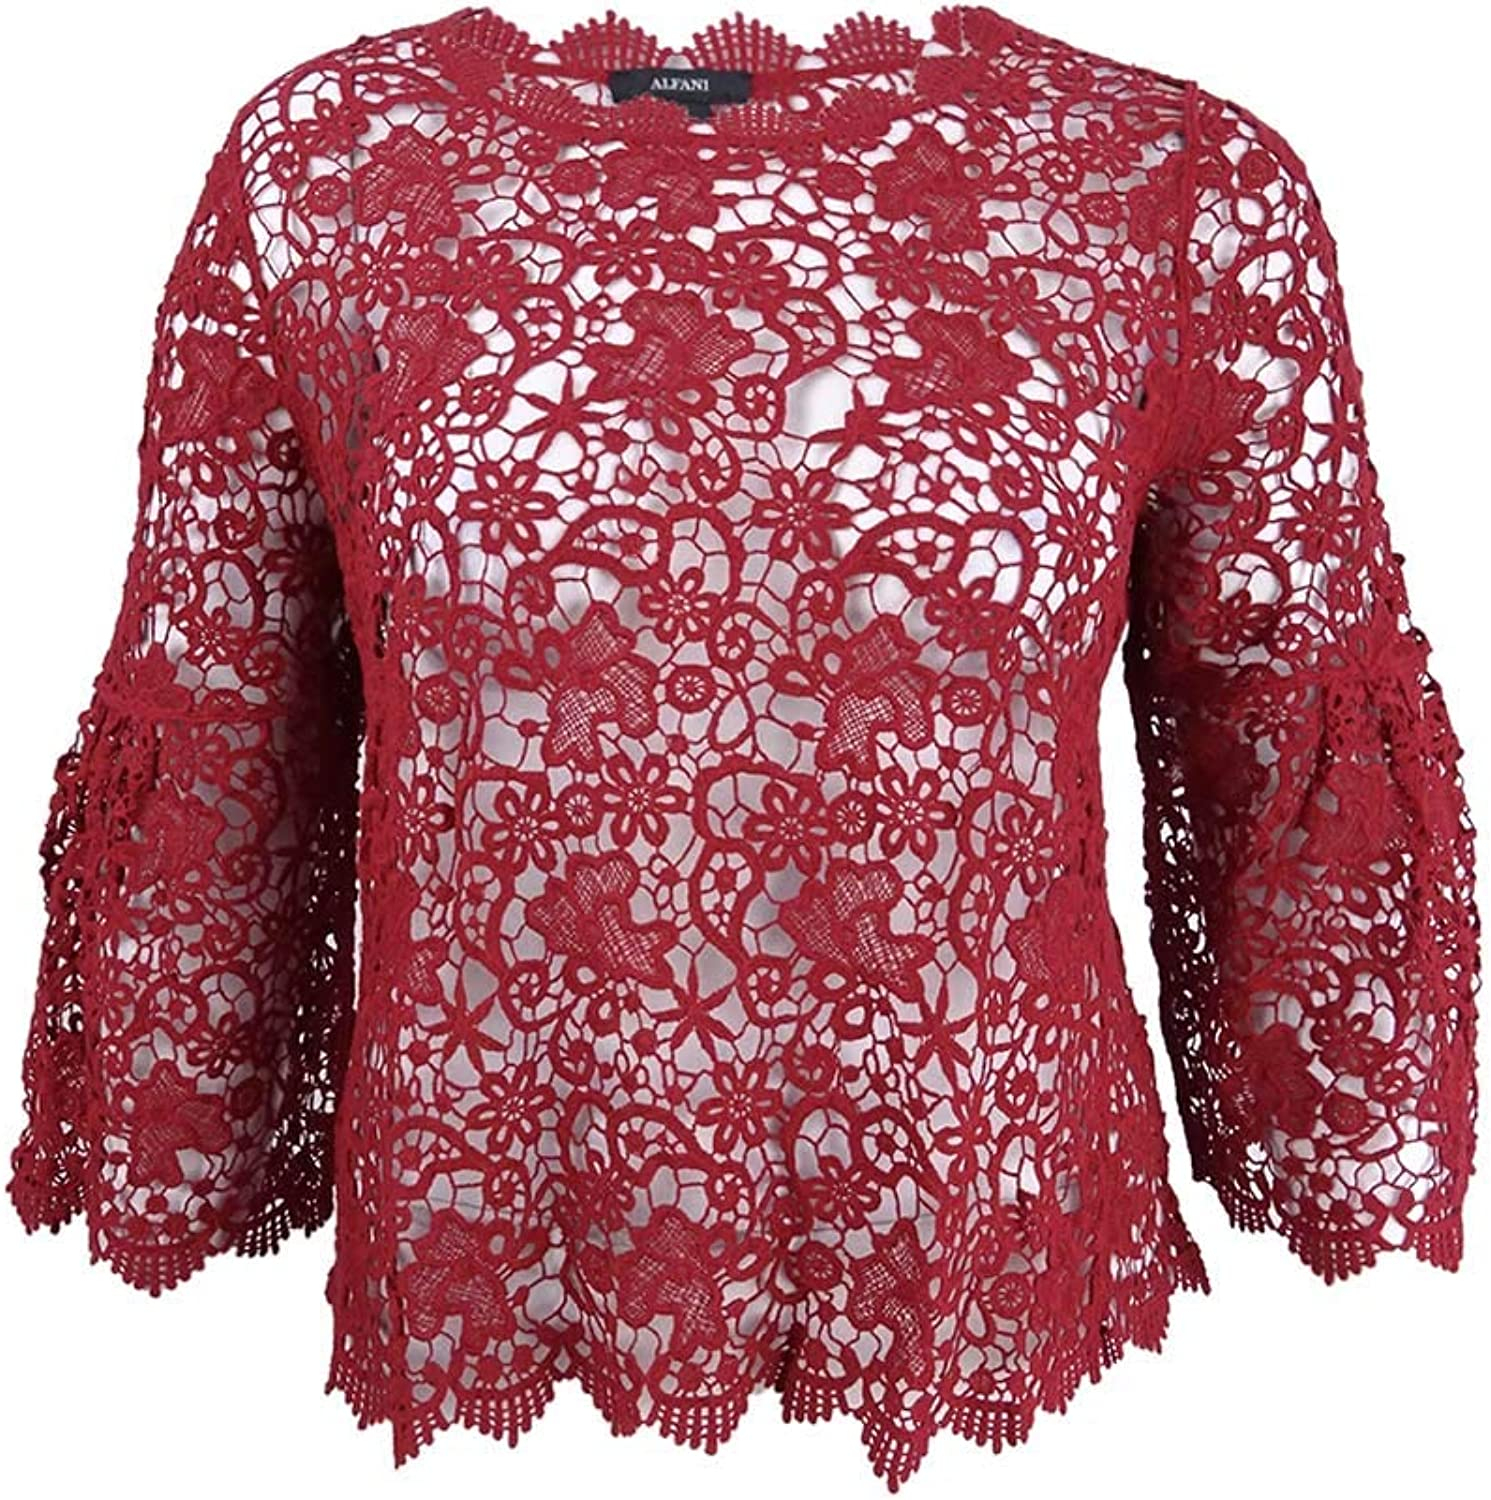 Alfani Womens Crocheted Knit Blouse